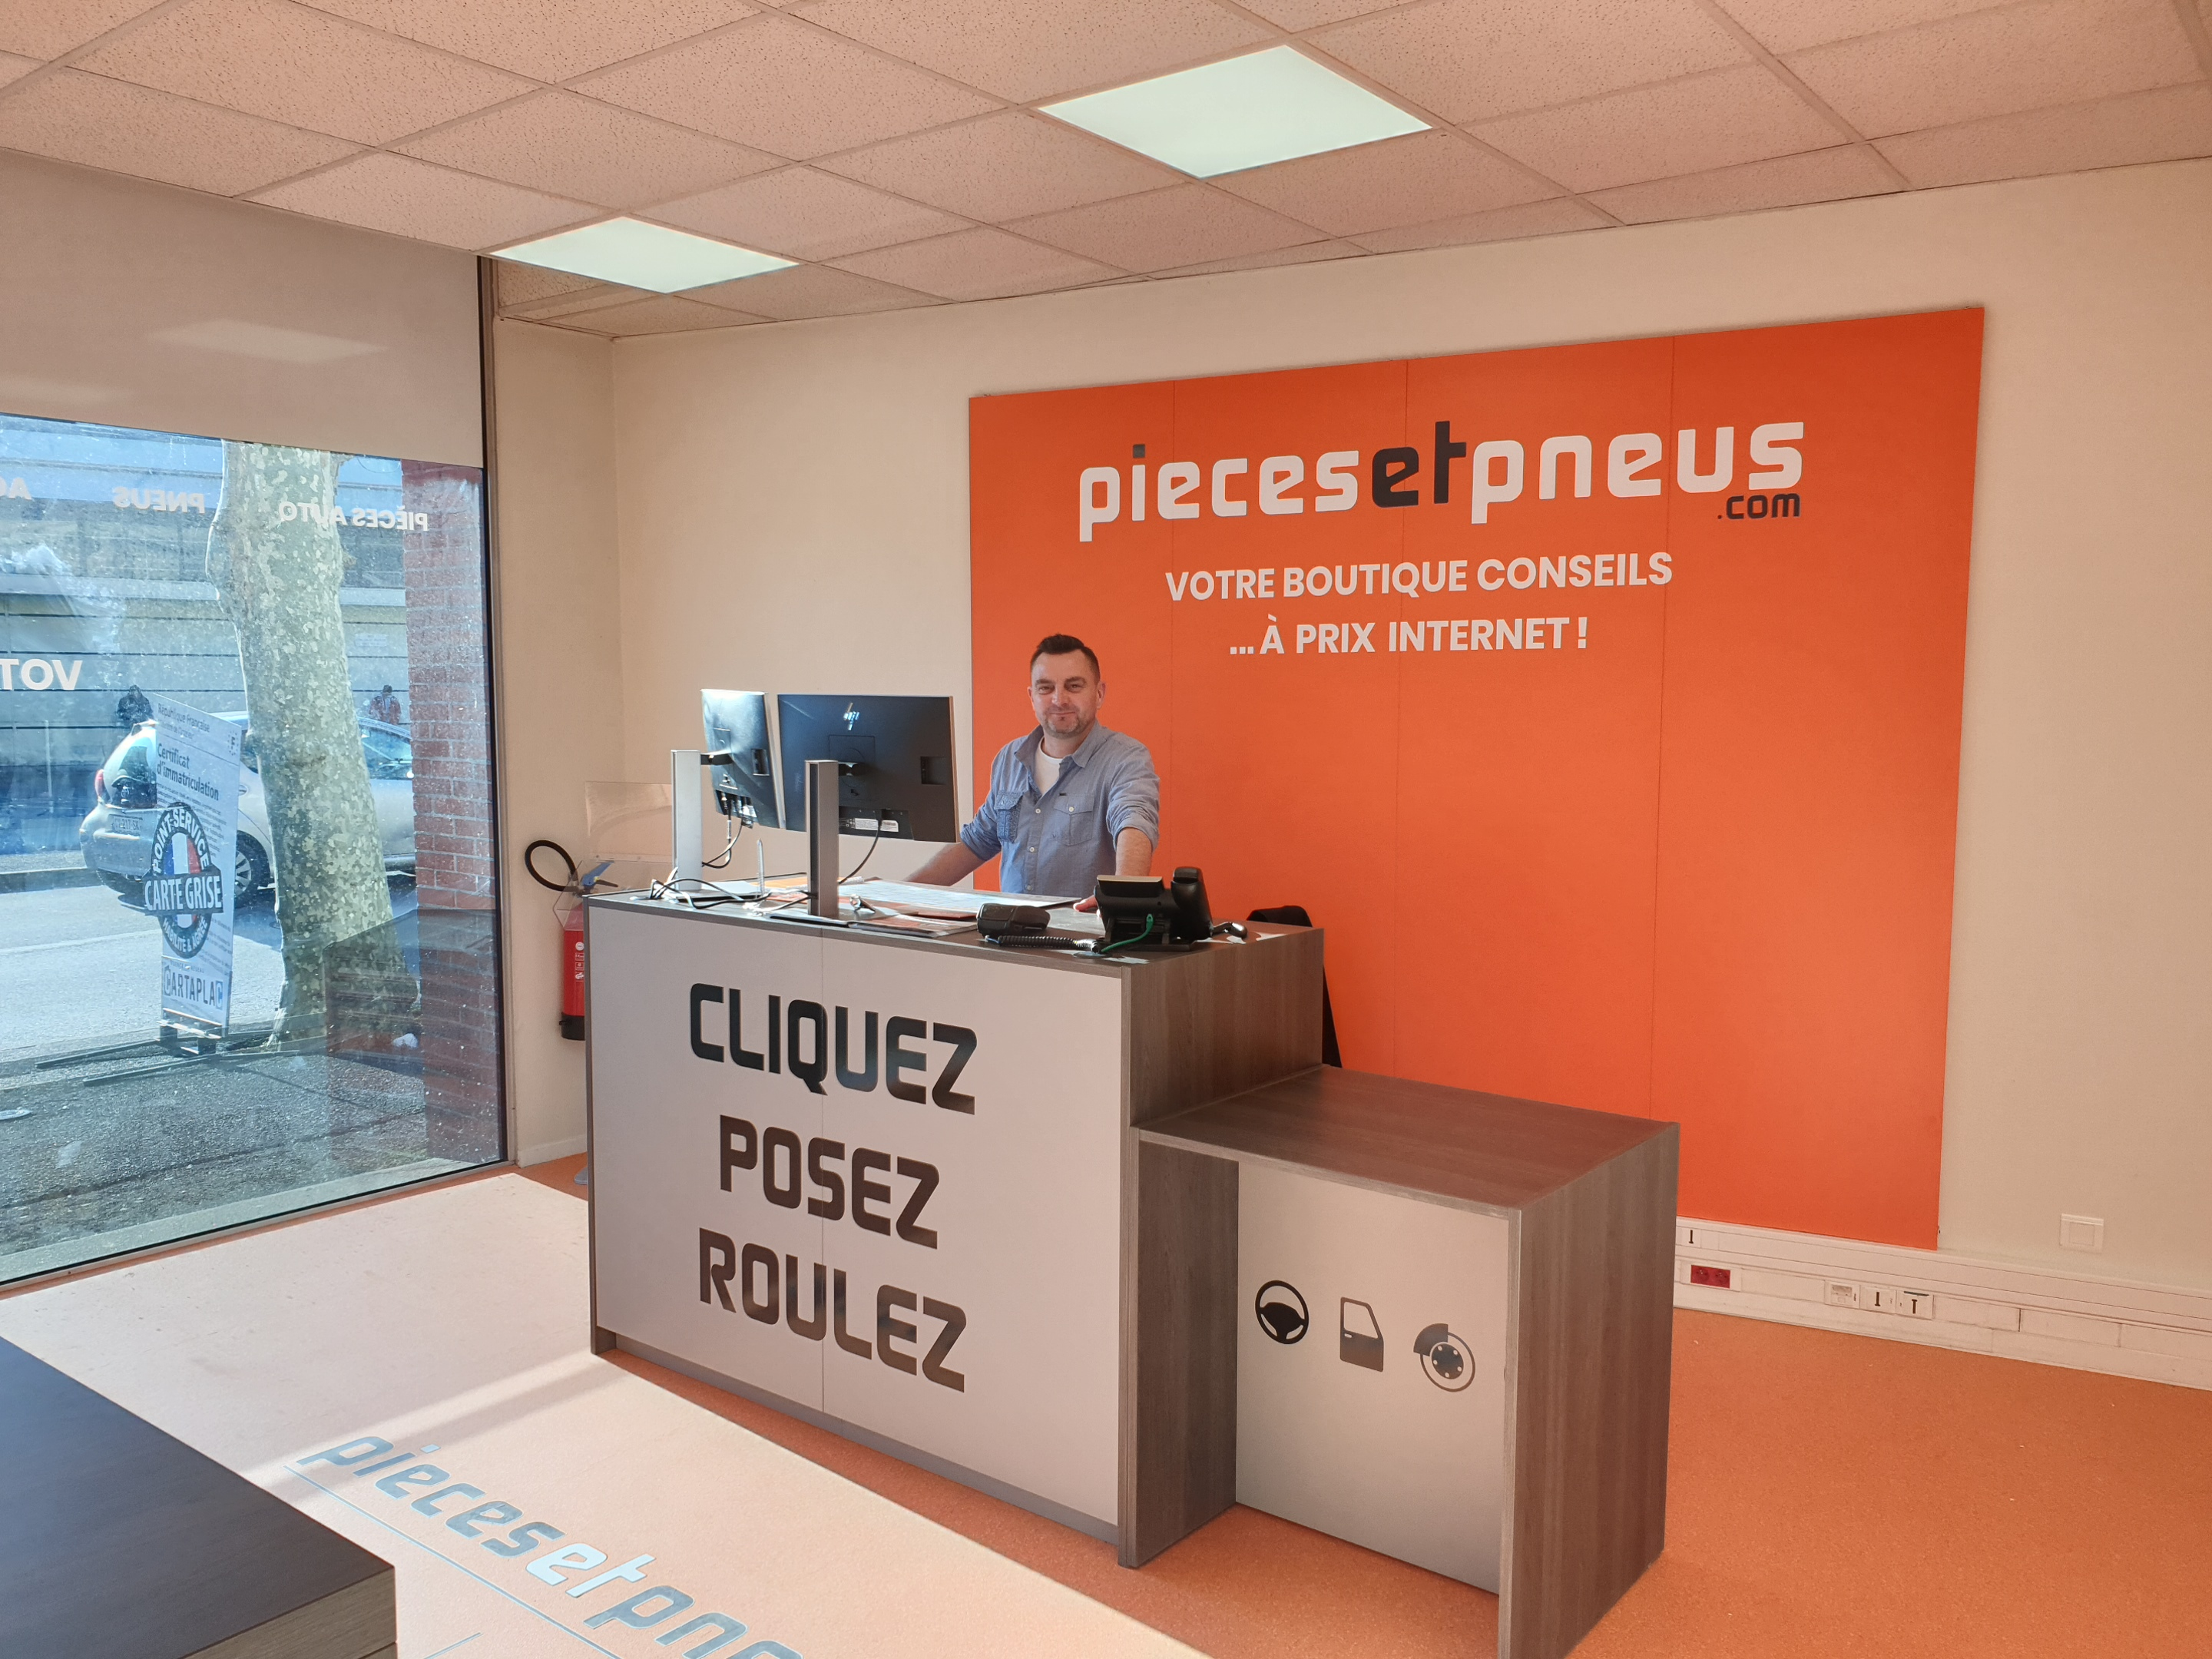 Surface commerciale - Piecesetpneus.com Cholet